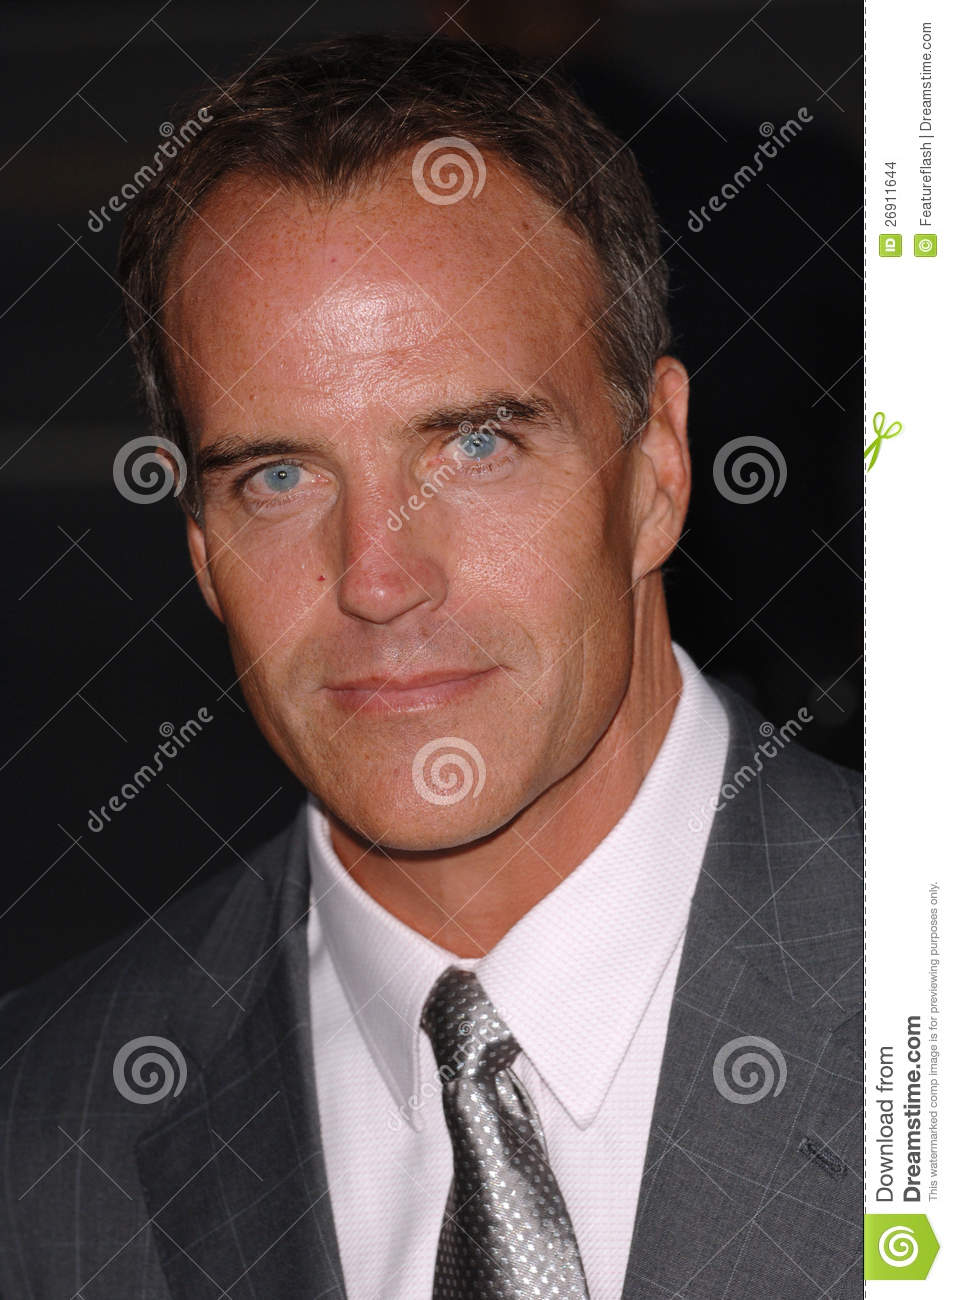 richard burgi twitterrichard burgi and lori kahn, richard burgi interview, richard burgi young, richard burgi sentinel, richard burgi, richard burgi liliana lopez, ричард бурги, richard burgi instagram, richard burgi 2015, richard burgi days of our lives, richard burgi hostel, richard burgi tumblr, richard burgi imdb, richard burgi wife, richard burgi net worth, richard burgi general hospital, richard burgi desperate housewives, richard burgi filmographie, richard burgi twitter, richard burgi sister